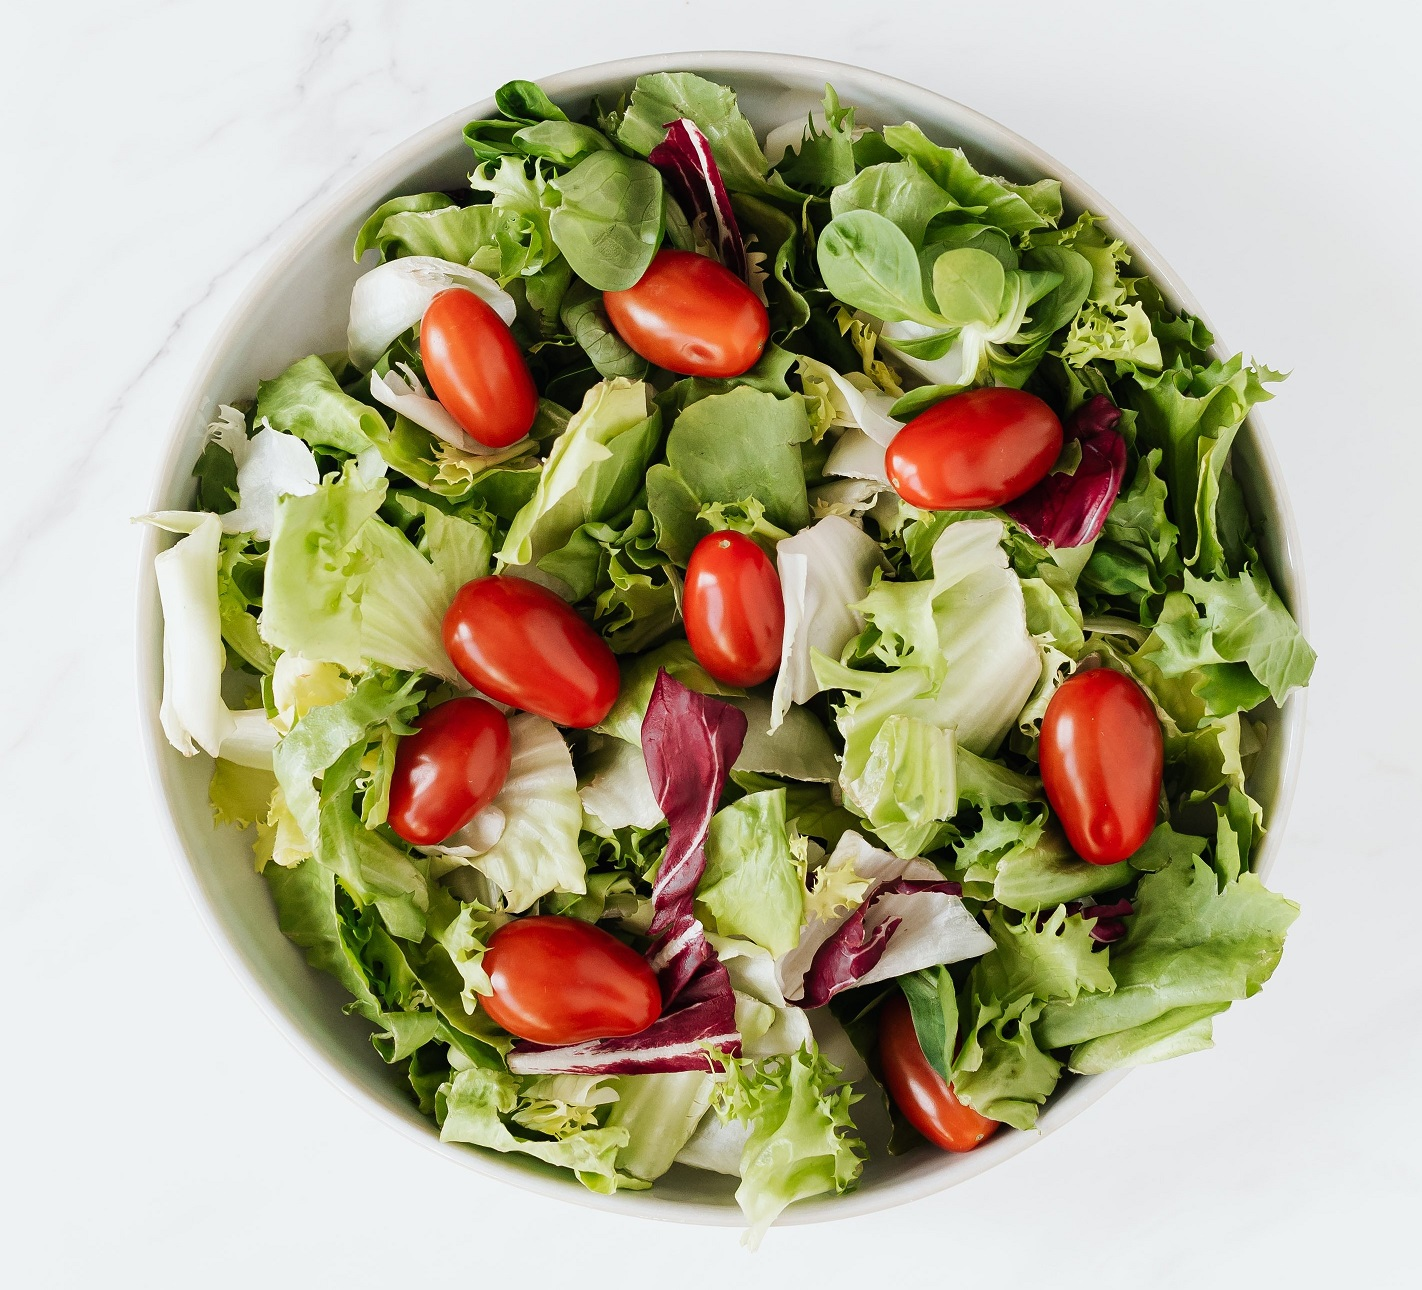 How to Make Perfect Green Salad